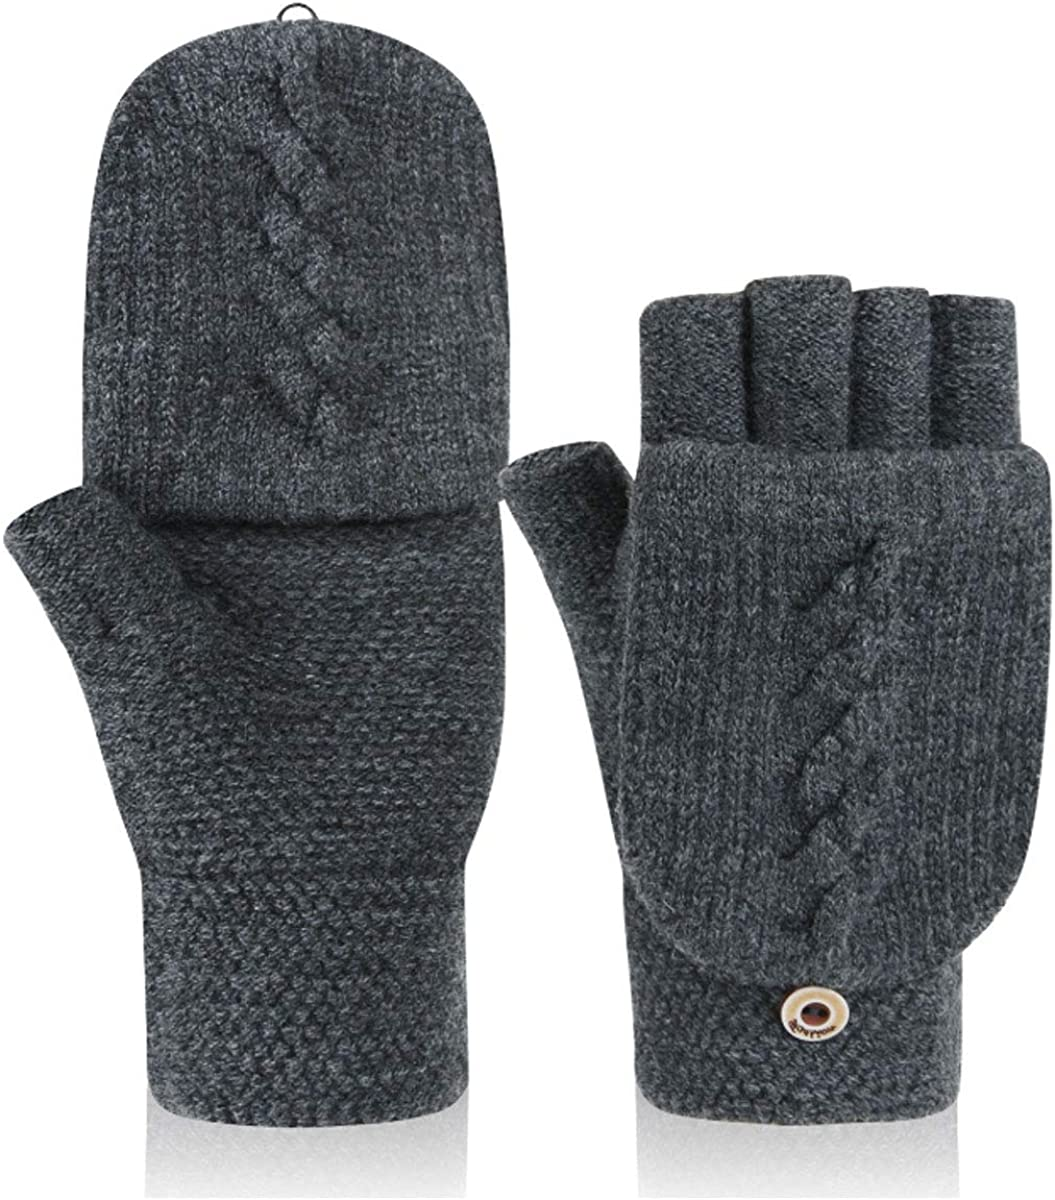 Men Cold Weather Gloves Fingerless Gloves Mittens Women Thermal Insulation Mittens Half Finger Convertible Mittens Texting Smartphone Gloves Wool Driving Cycling Ski Snow Gloves Mitts Hand Warmer